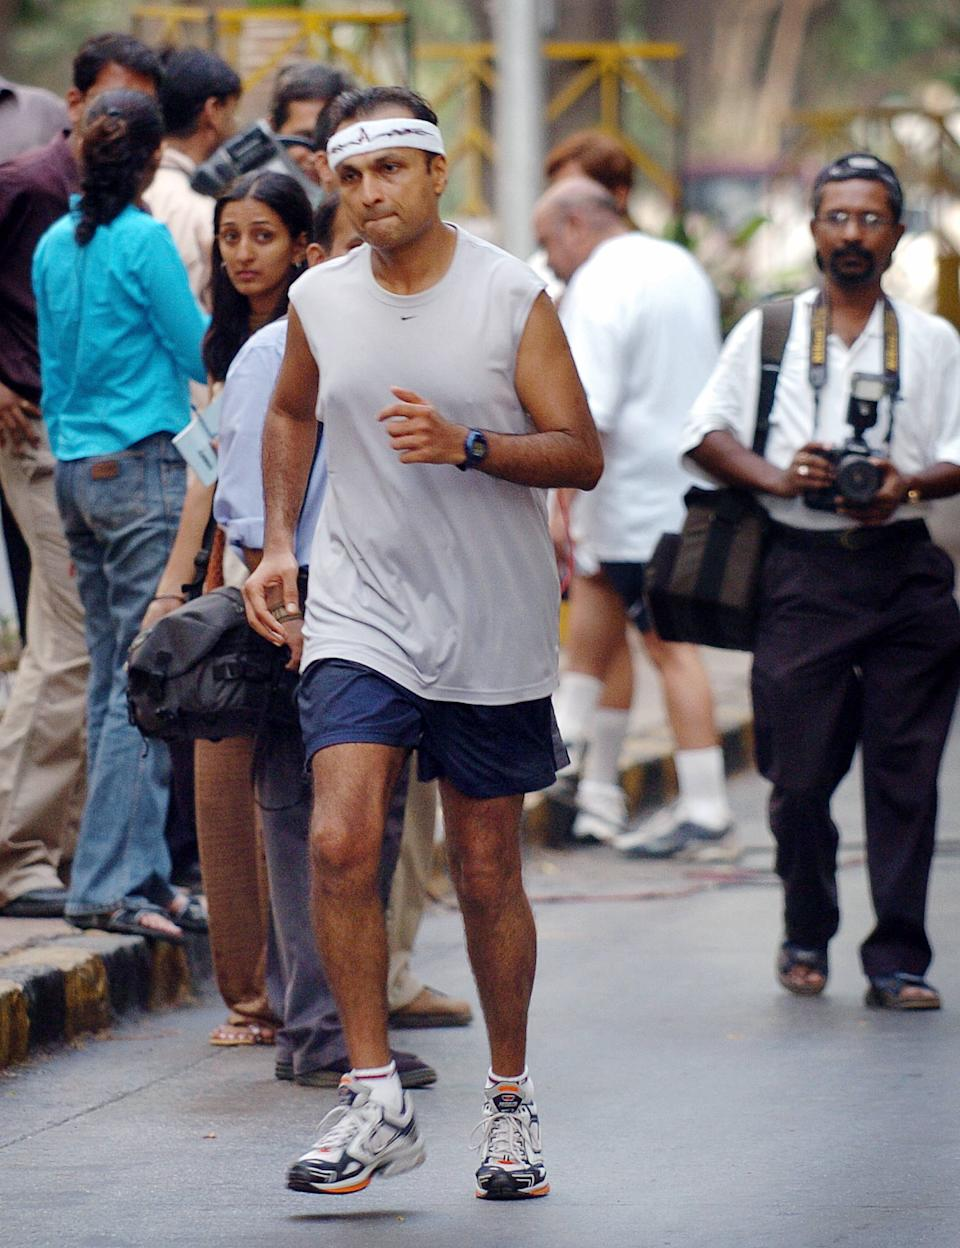 Anil Ambani, head of India's largest private sector company Reliance Industries, runs from his home to a polling stating to be one of the first to cast his vote when polling stations opened at 7:00 am (0130 GMT) in Bombay, 26 April 2004. Ambani, a marathon runner, jogged to and from the polling station in southern Bombay as the third phase of India's general elections, the world's largest democratic exercise, got under way with more than 172 million people eligible to vote for 1,278 candidates in 137 constituencies. AFP PHOTO/Rob ELLIOTT